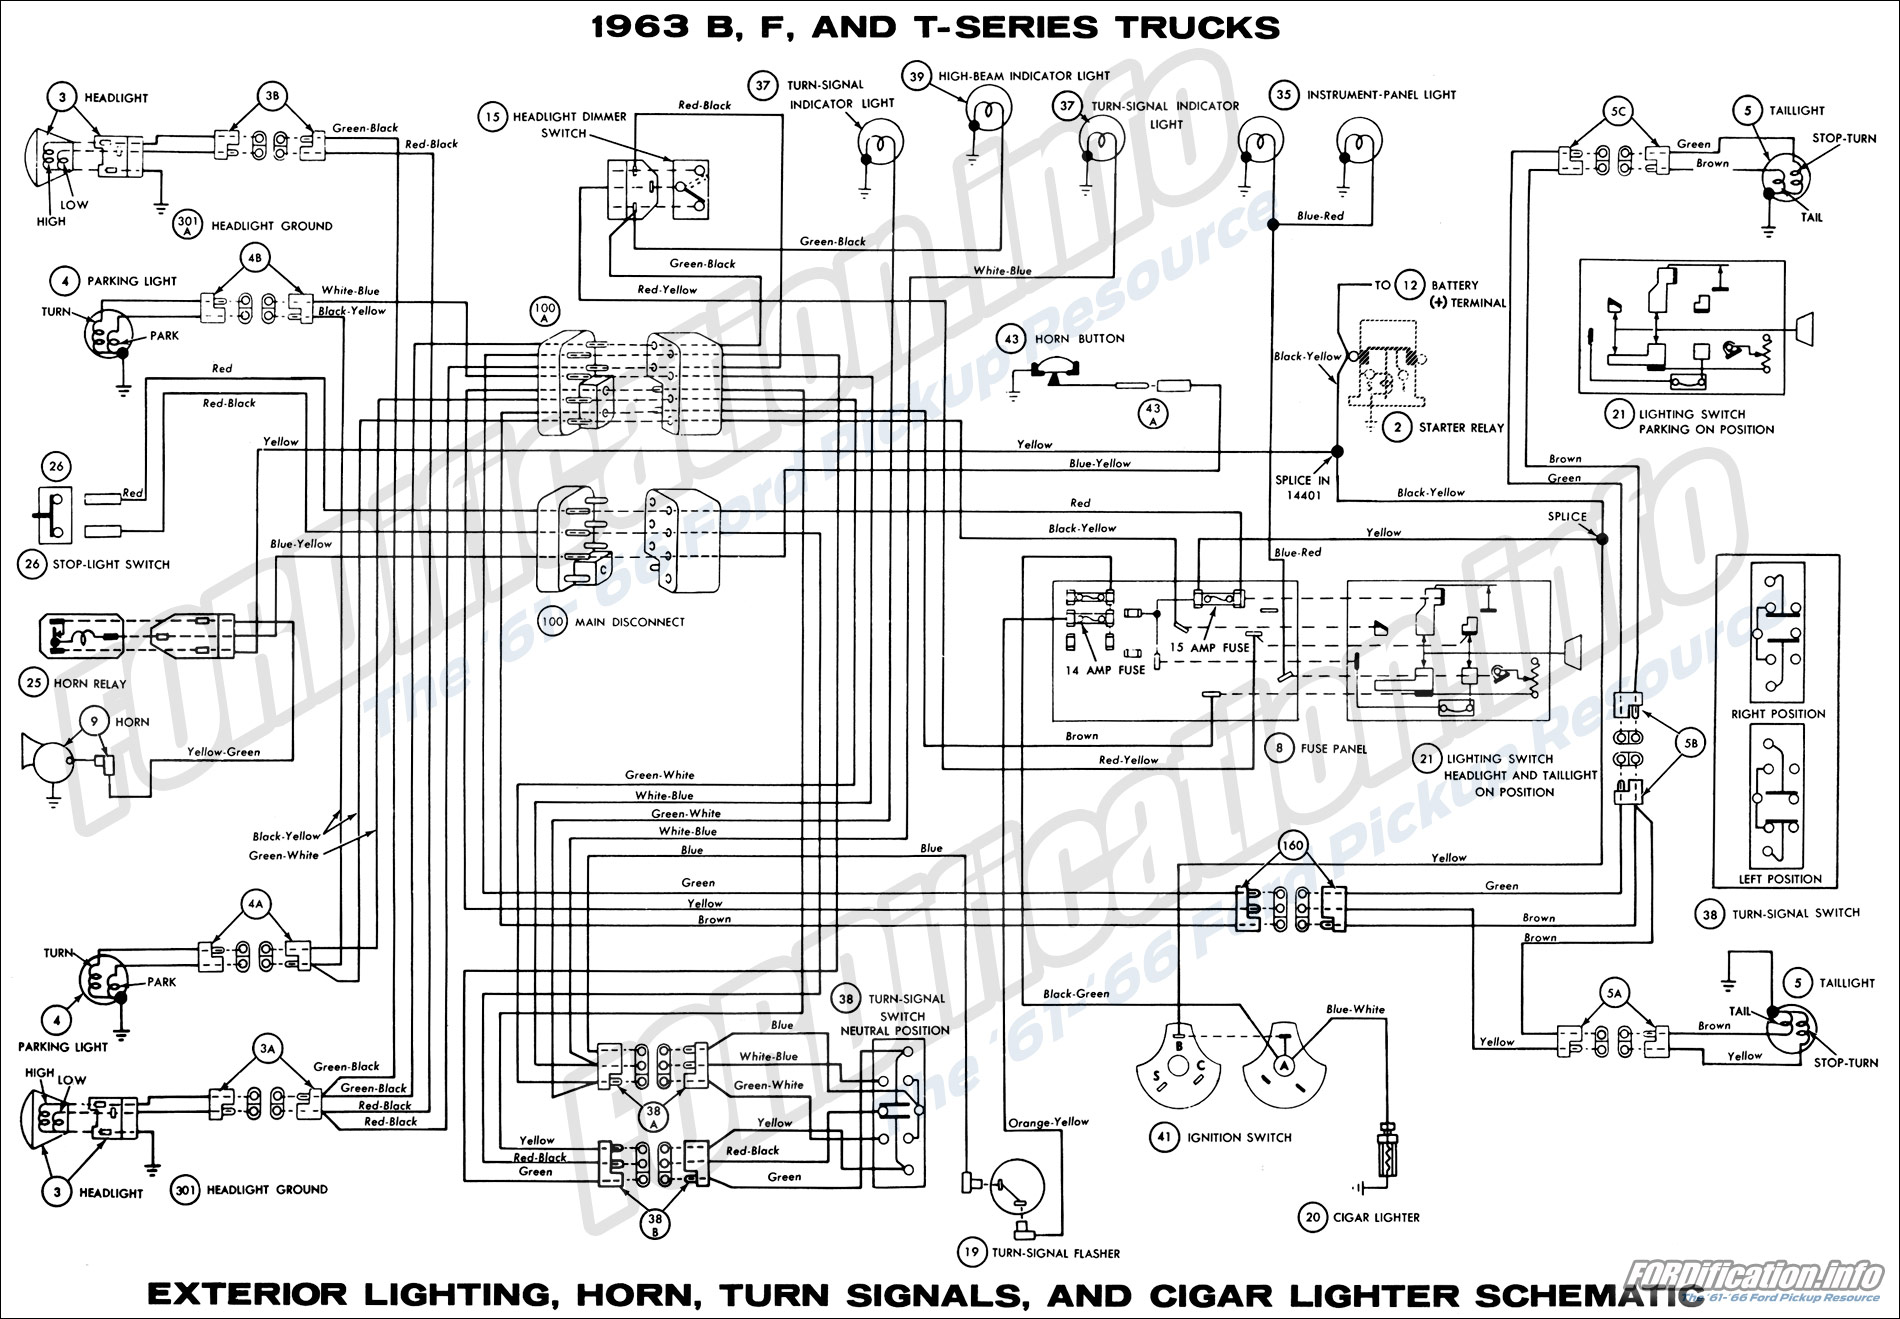 1963 Ford F100 Wiring Diagram Smart Diagrams 1962 Also 1964 On Truck Fordification Info The 61 66 Rh